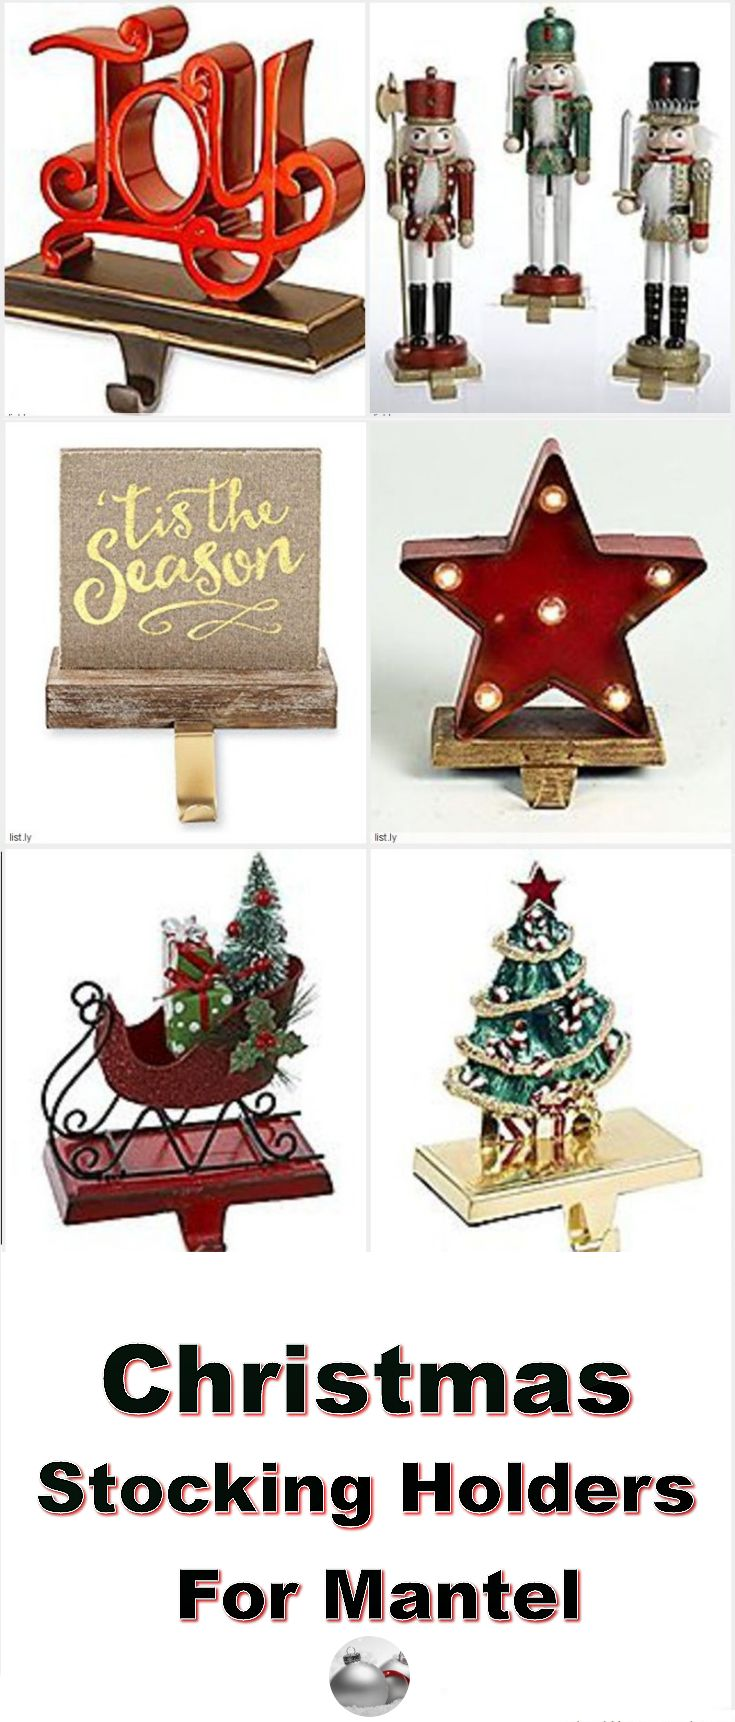 Get these Christmas stocking holders for mantle to brighten up your Christmas decor. They come in all kinds of colors, styles and designs that is sure to enhance your Christmas mantel.